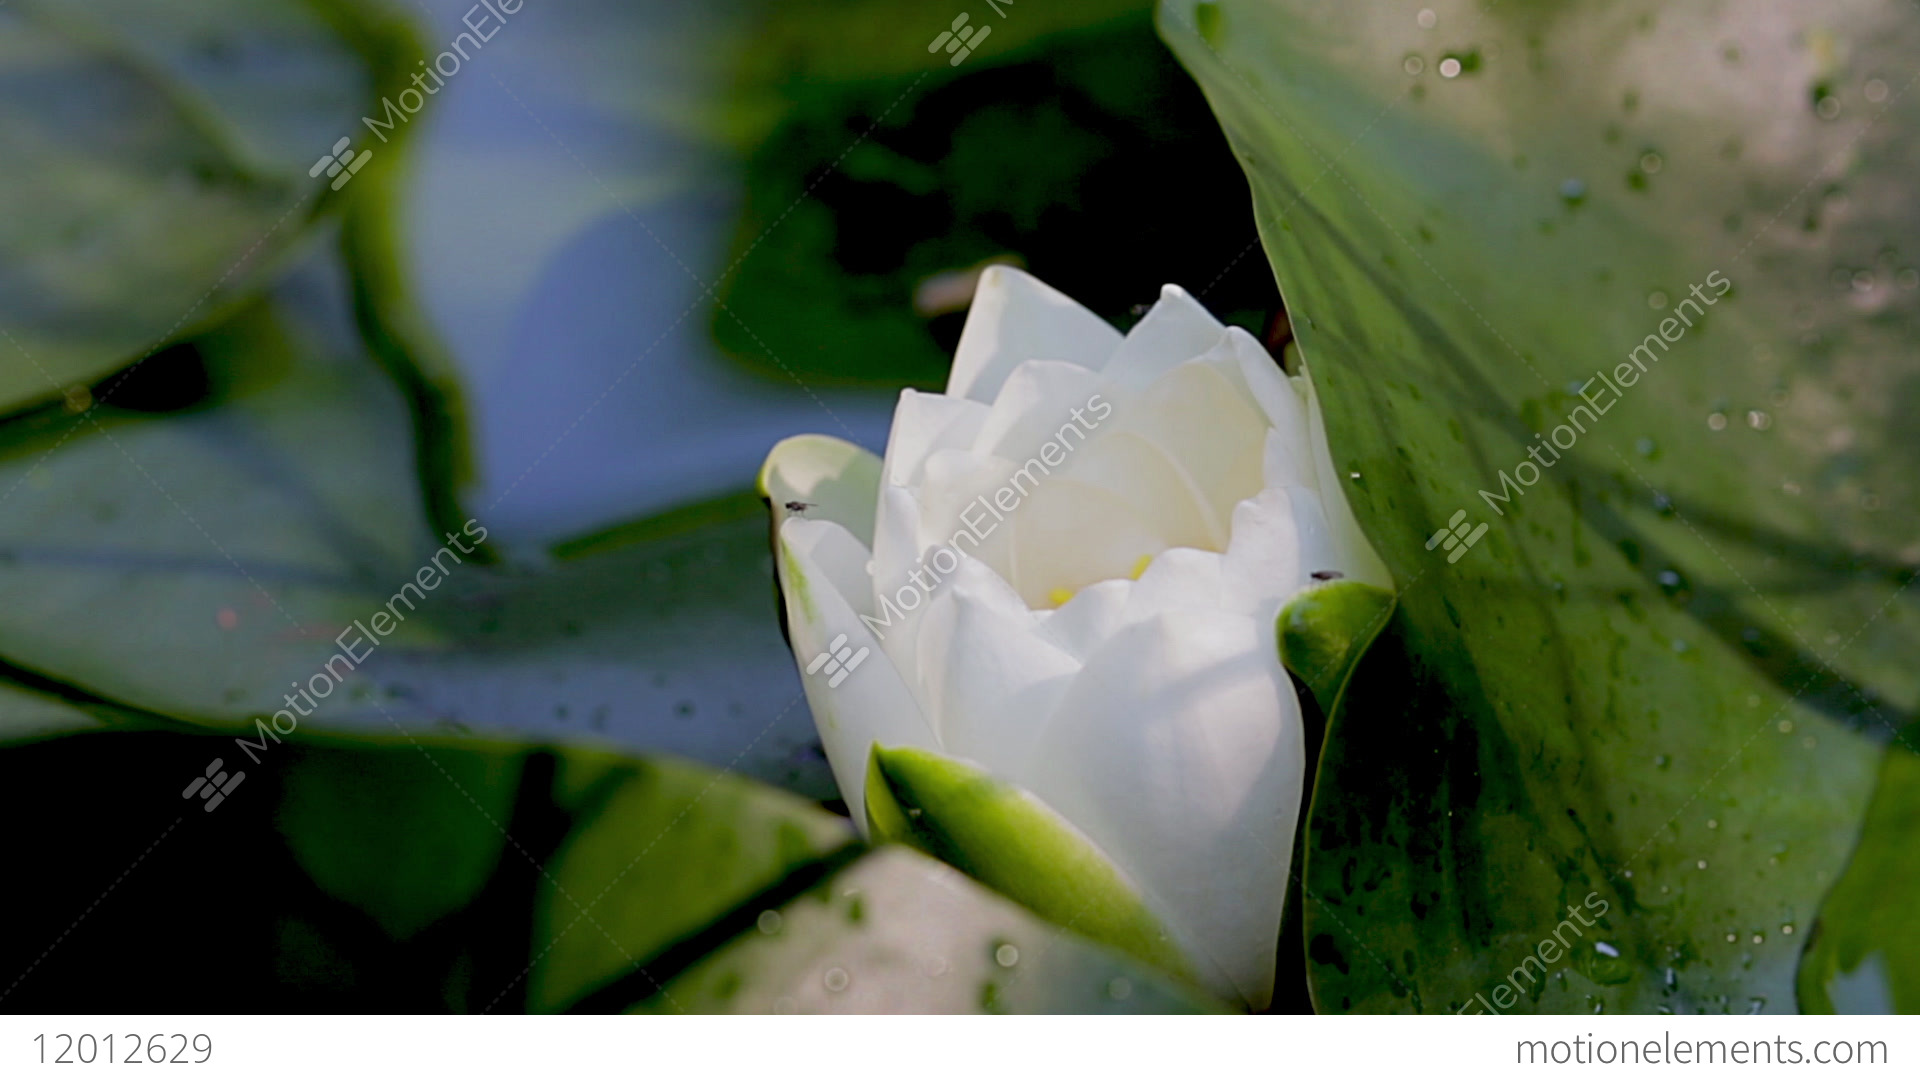 Close up of white lotus flower ready to blossom lily pad and bloom close up of white lotus flower ready to blossom lily pad stock izmirmasajfo